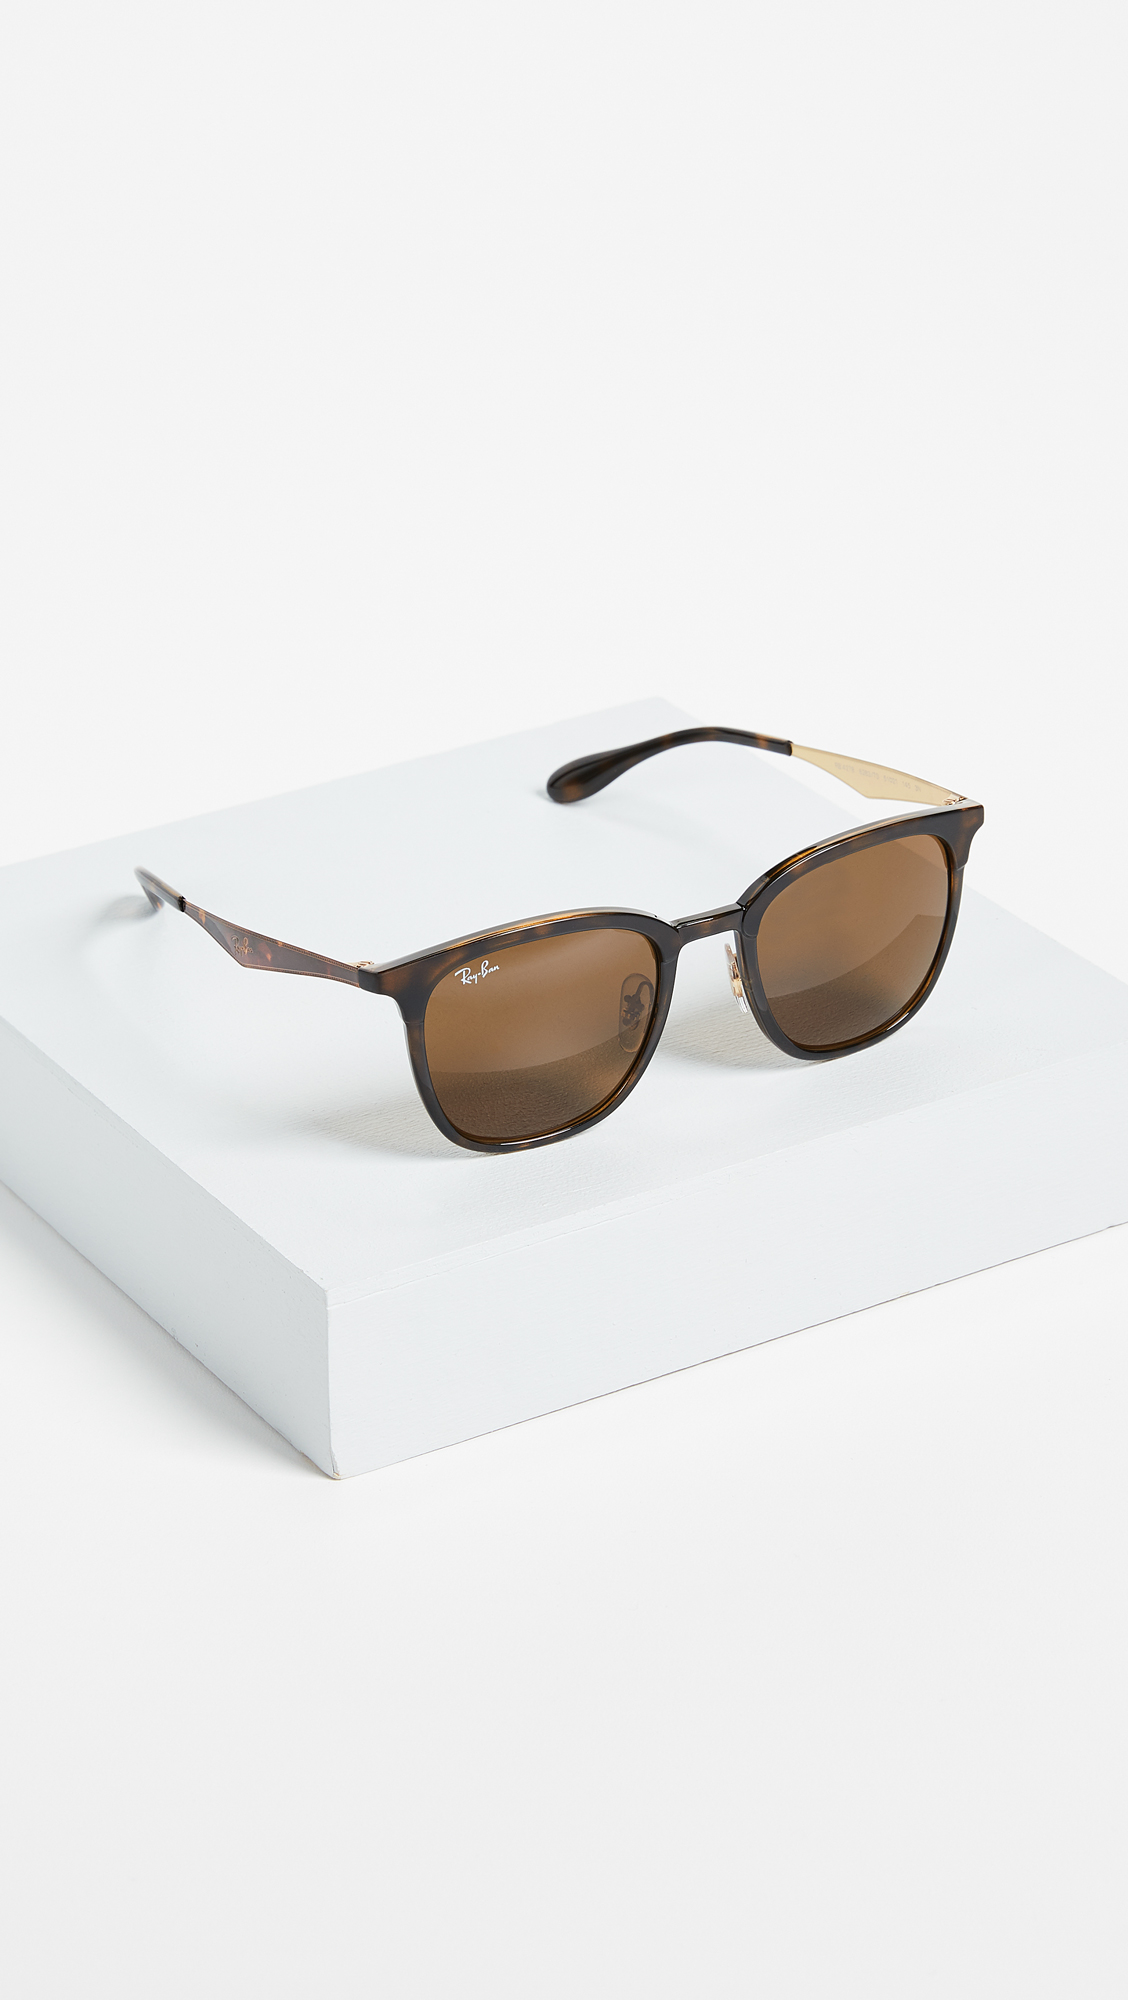 6632fc4bd6d32 Ray-Ban Square Sunglasses